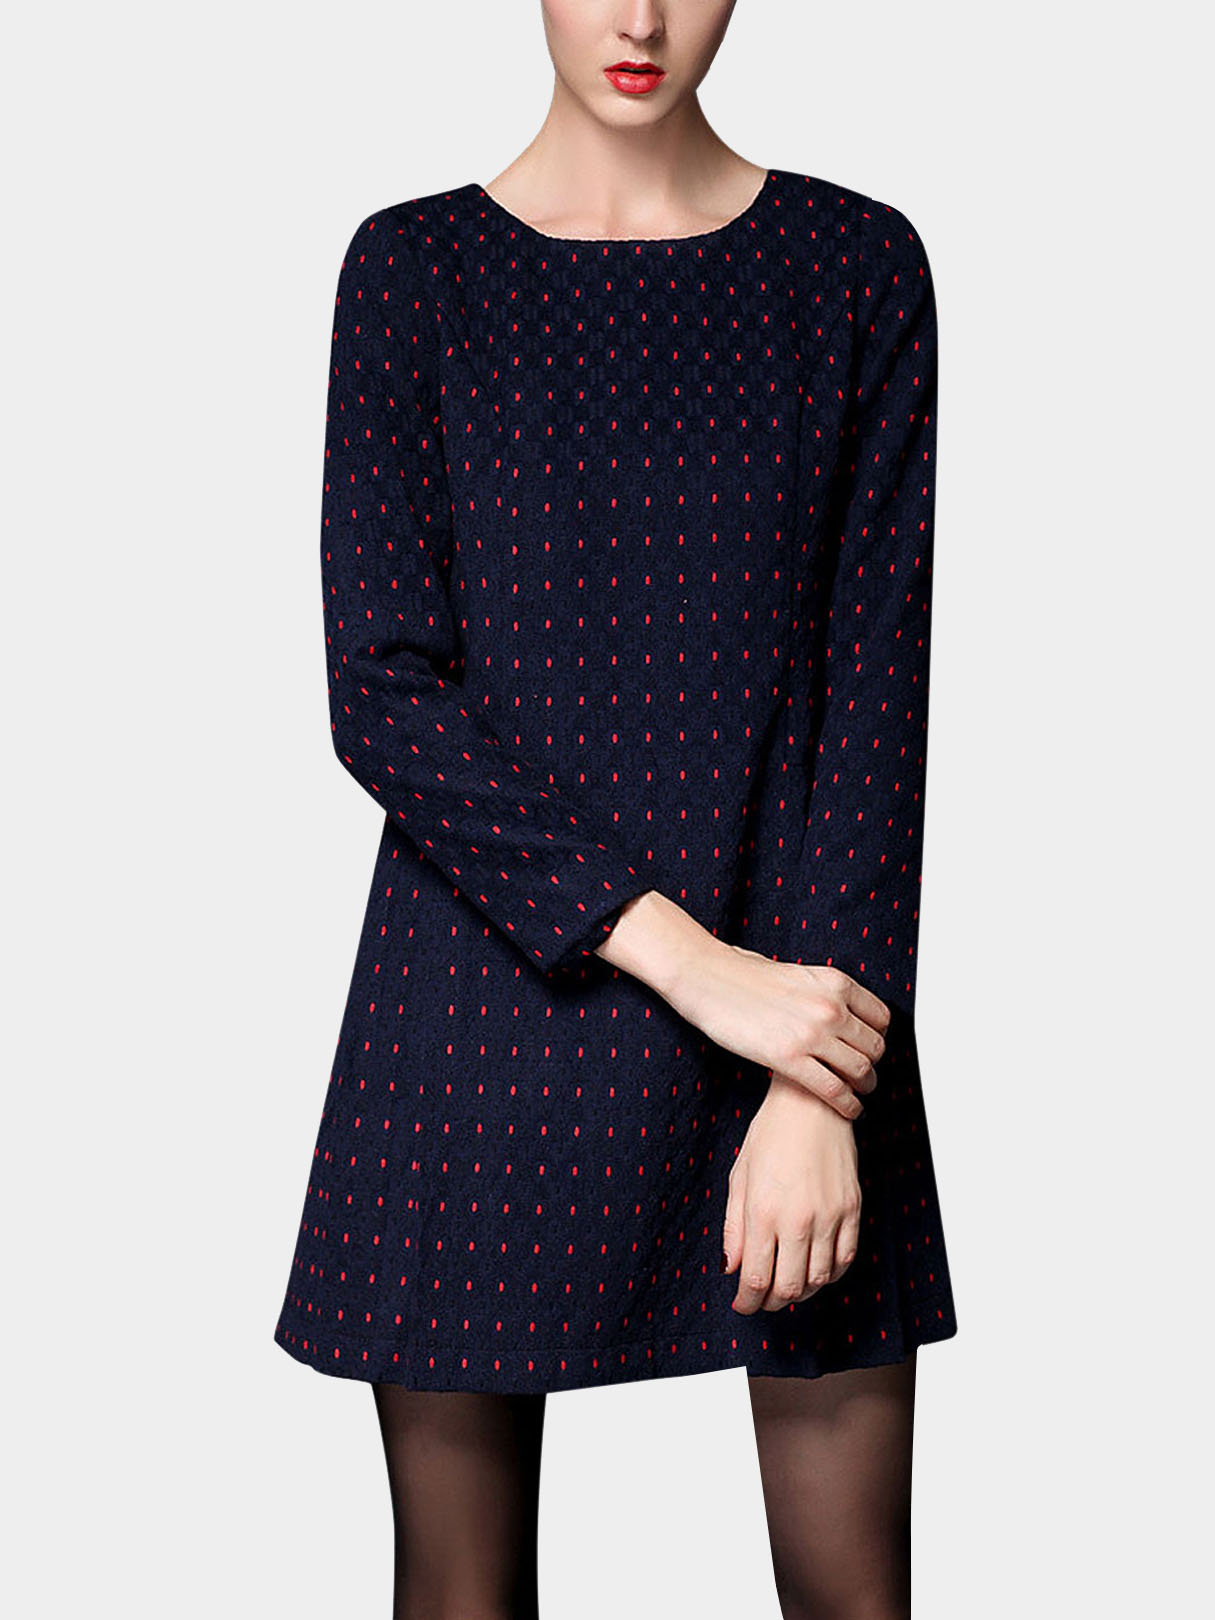 Plus Size Polka Dot Long Sleeve Dress In Navy Blue